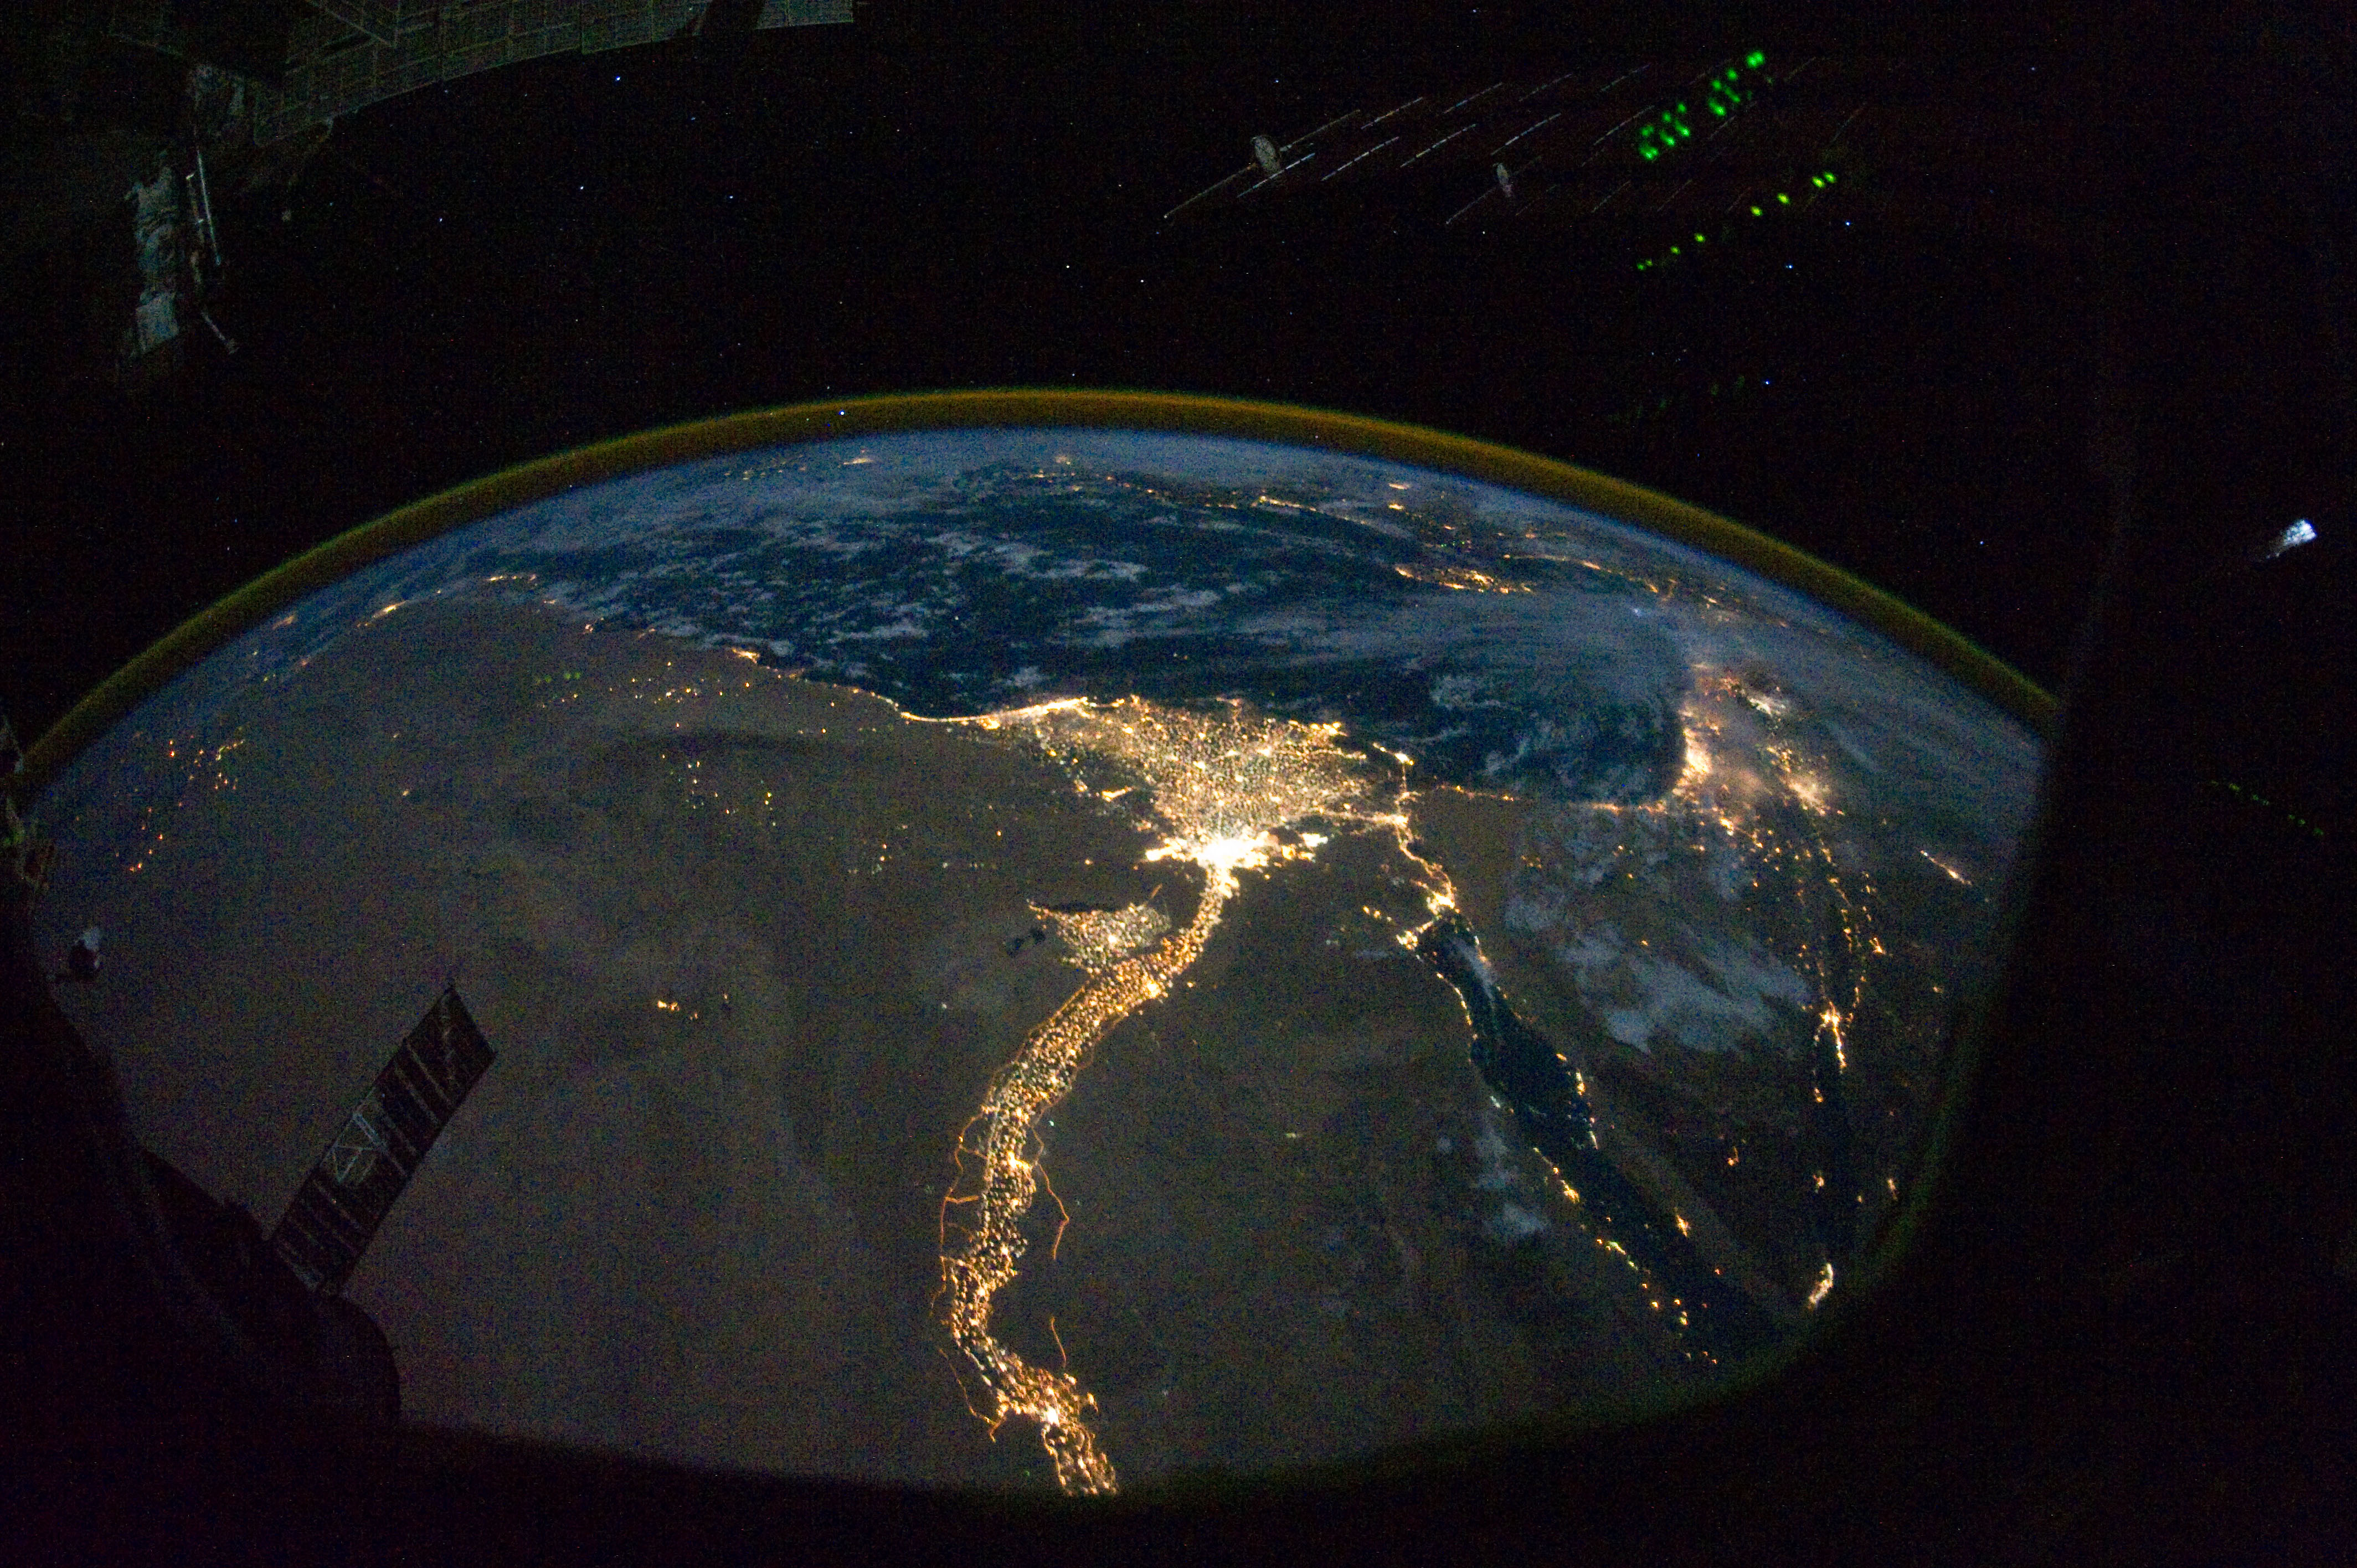 https://upload.wikimedia.org/wikipedia/commons/1/13/Nile_River_Delta_at_Night.JPG